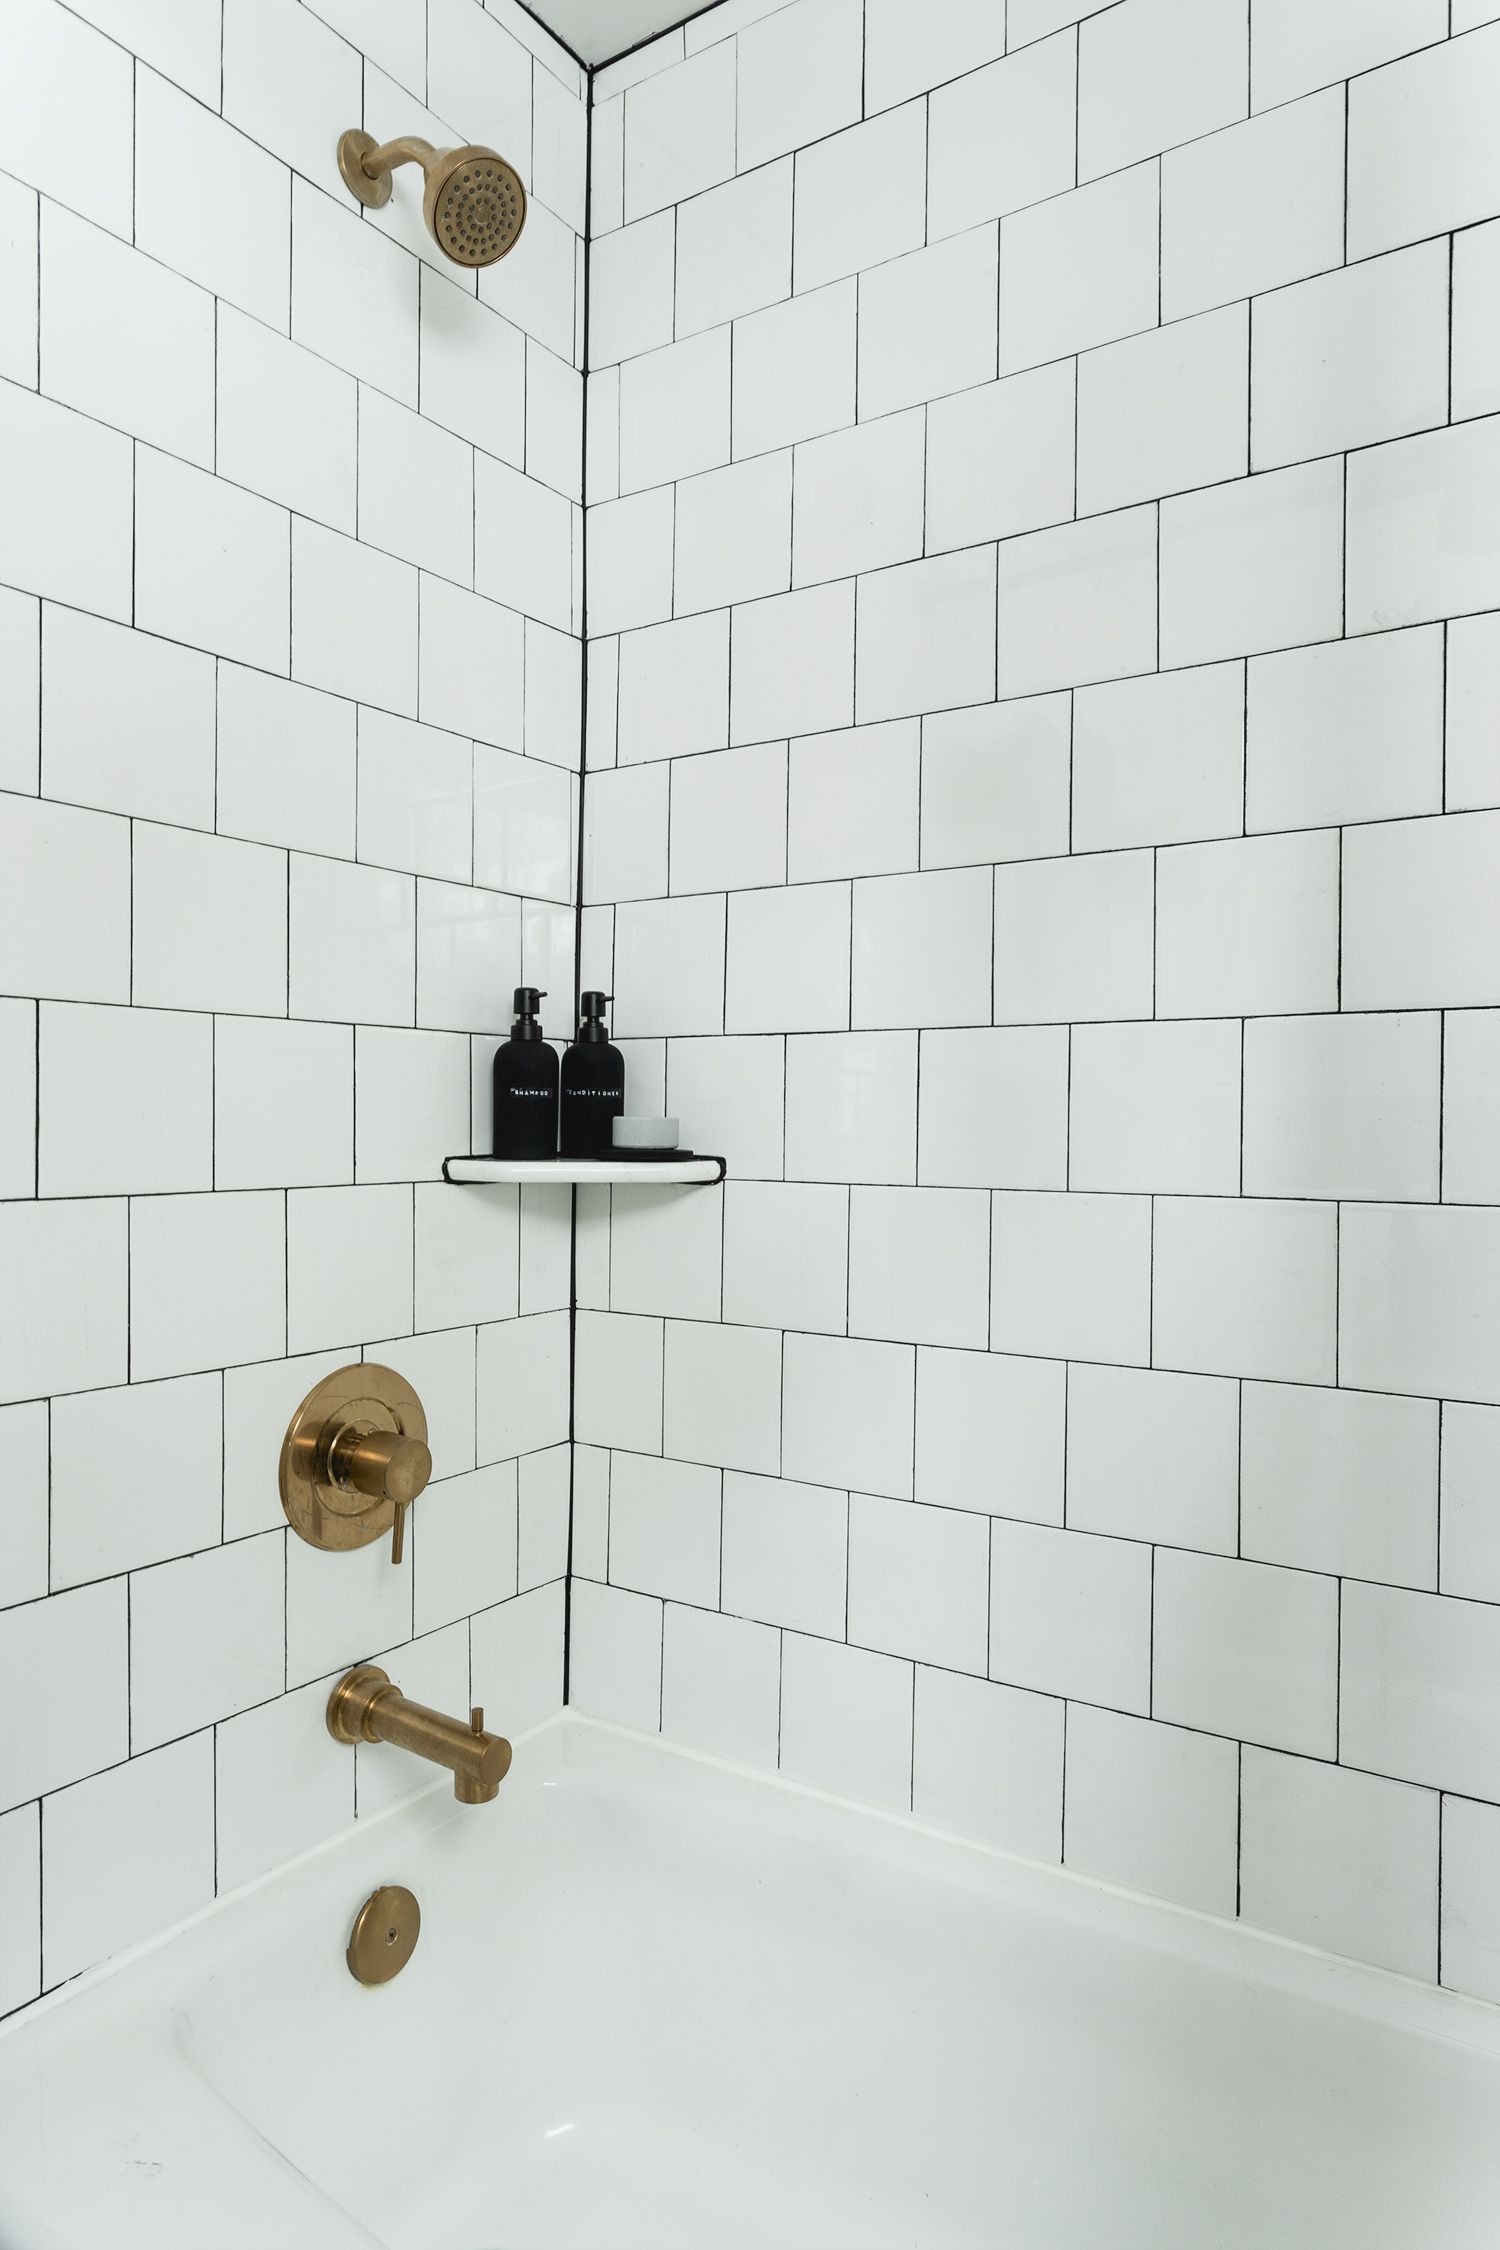 Try This Add A Corner Shelf To Your Shower In 2020 With Images Corner Shelves